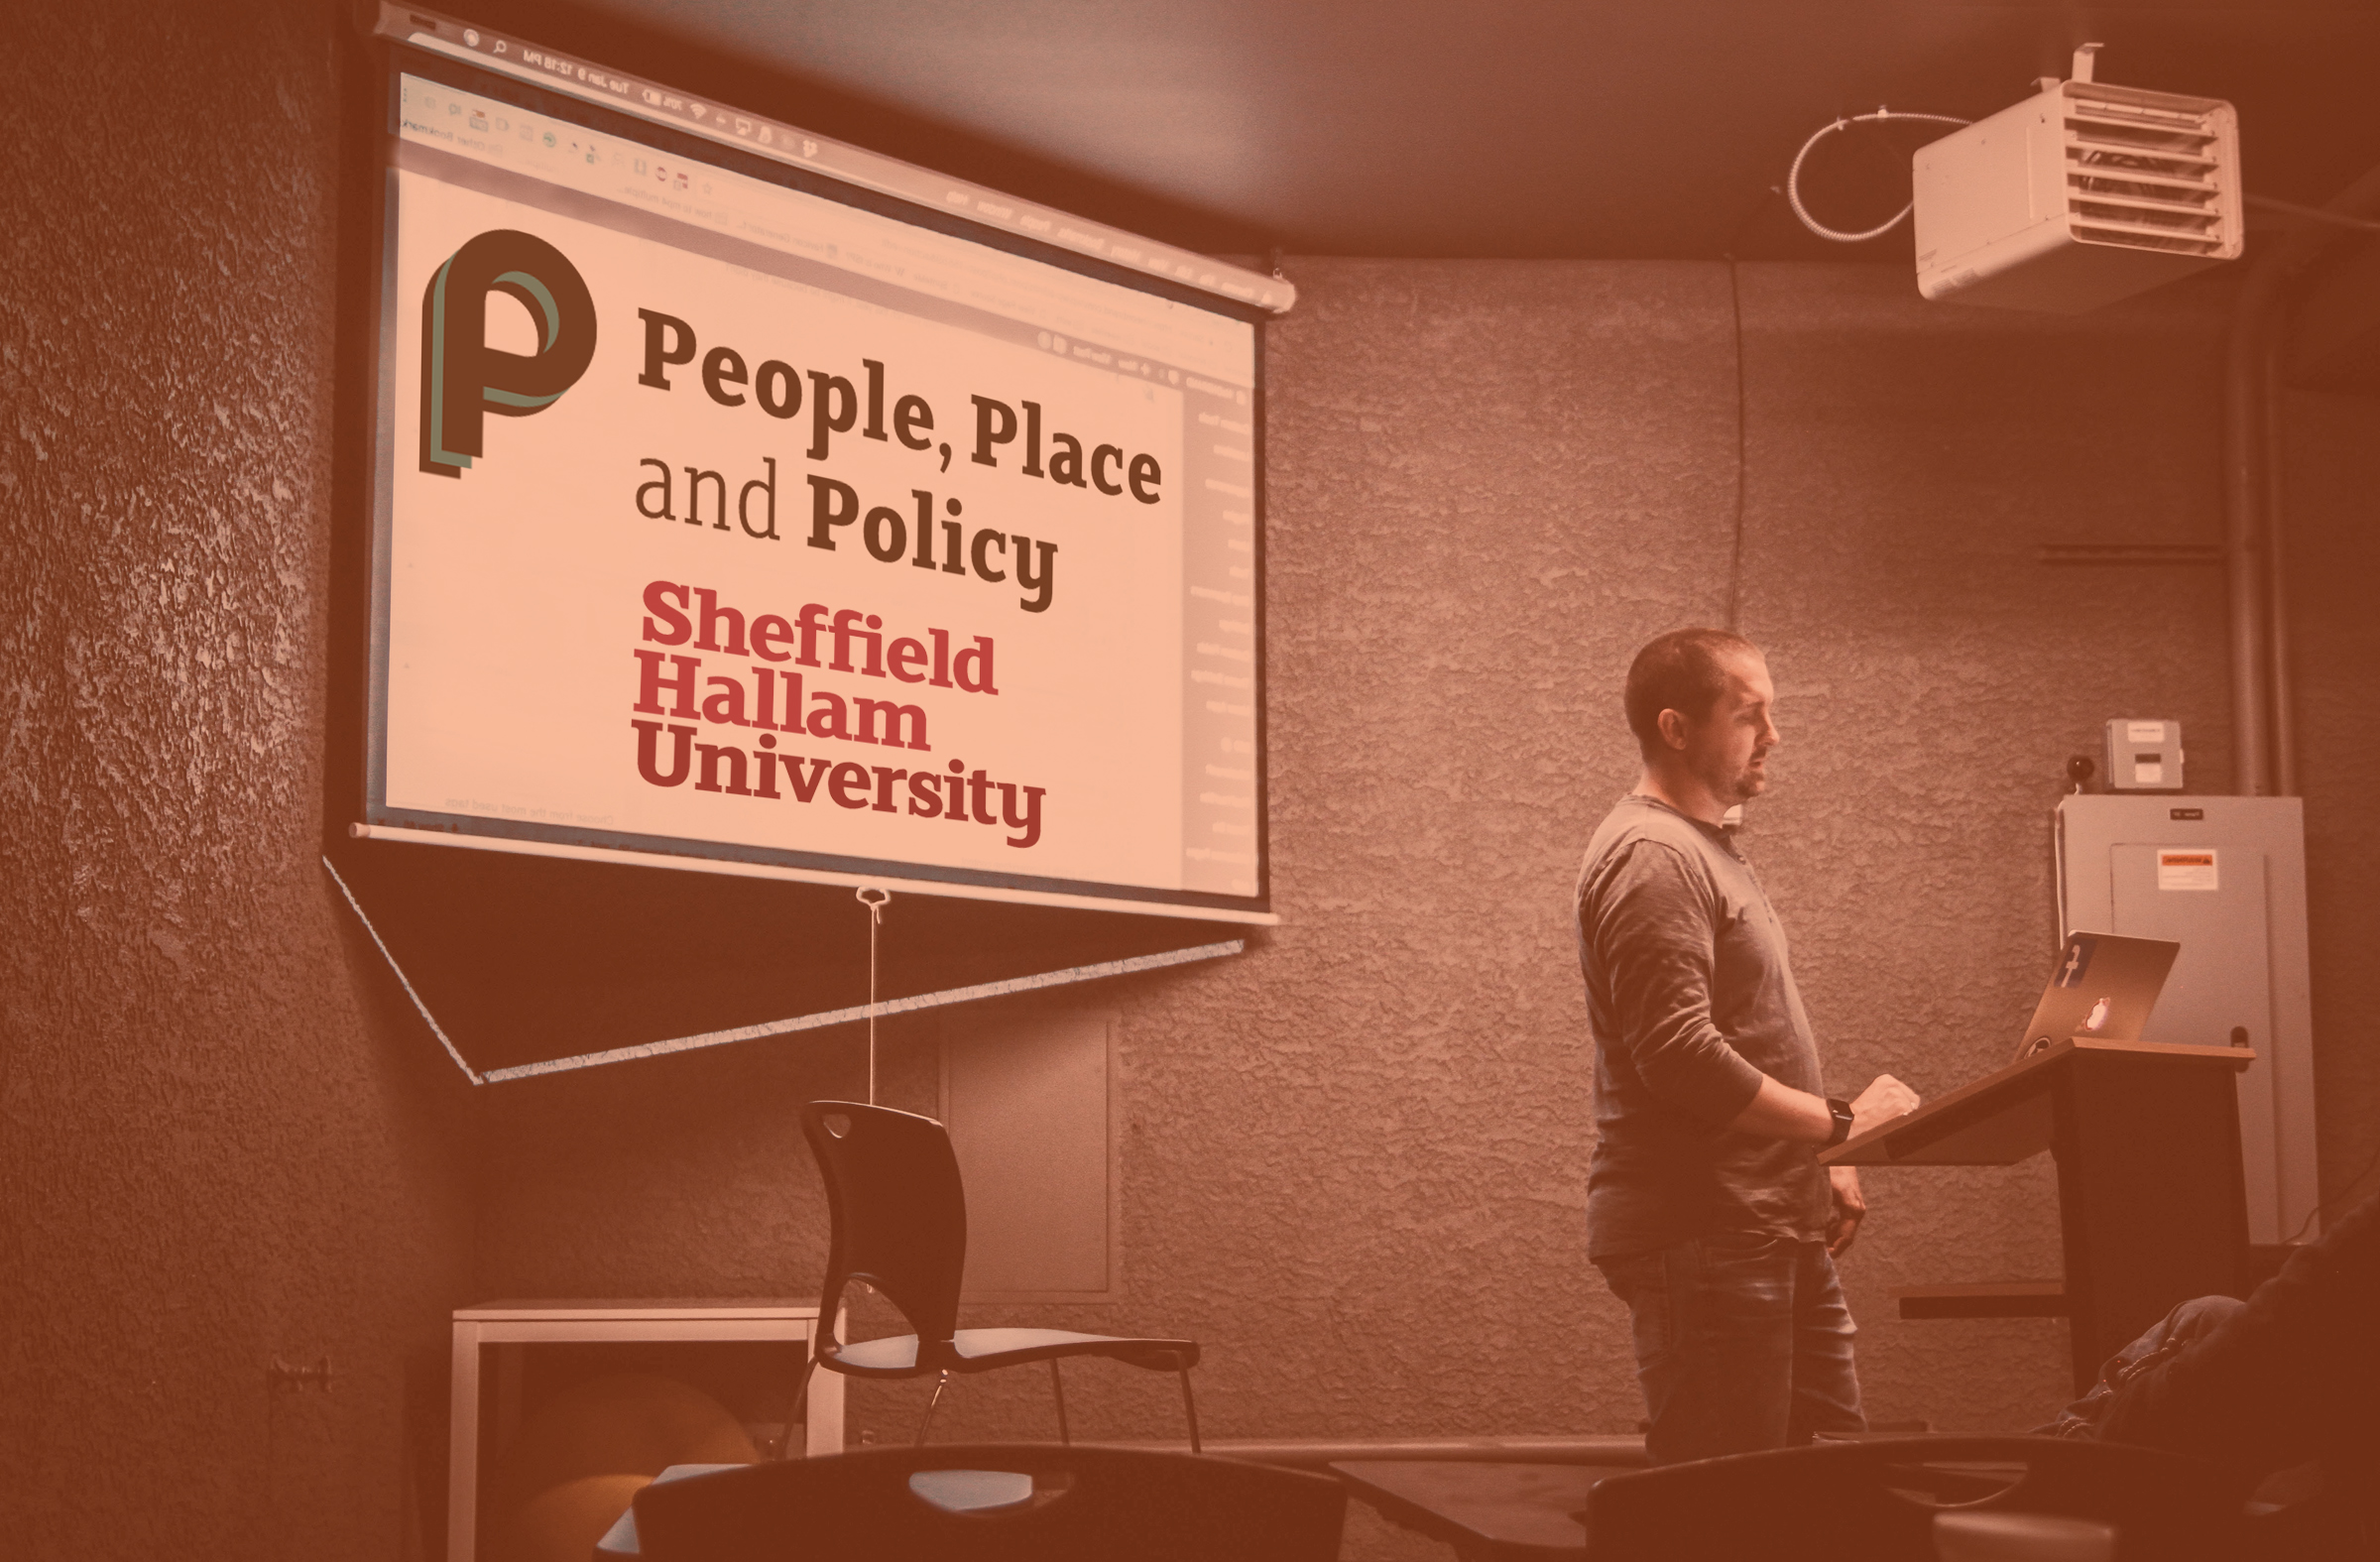 People Place and Policy 2018.jpg